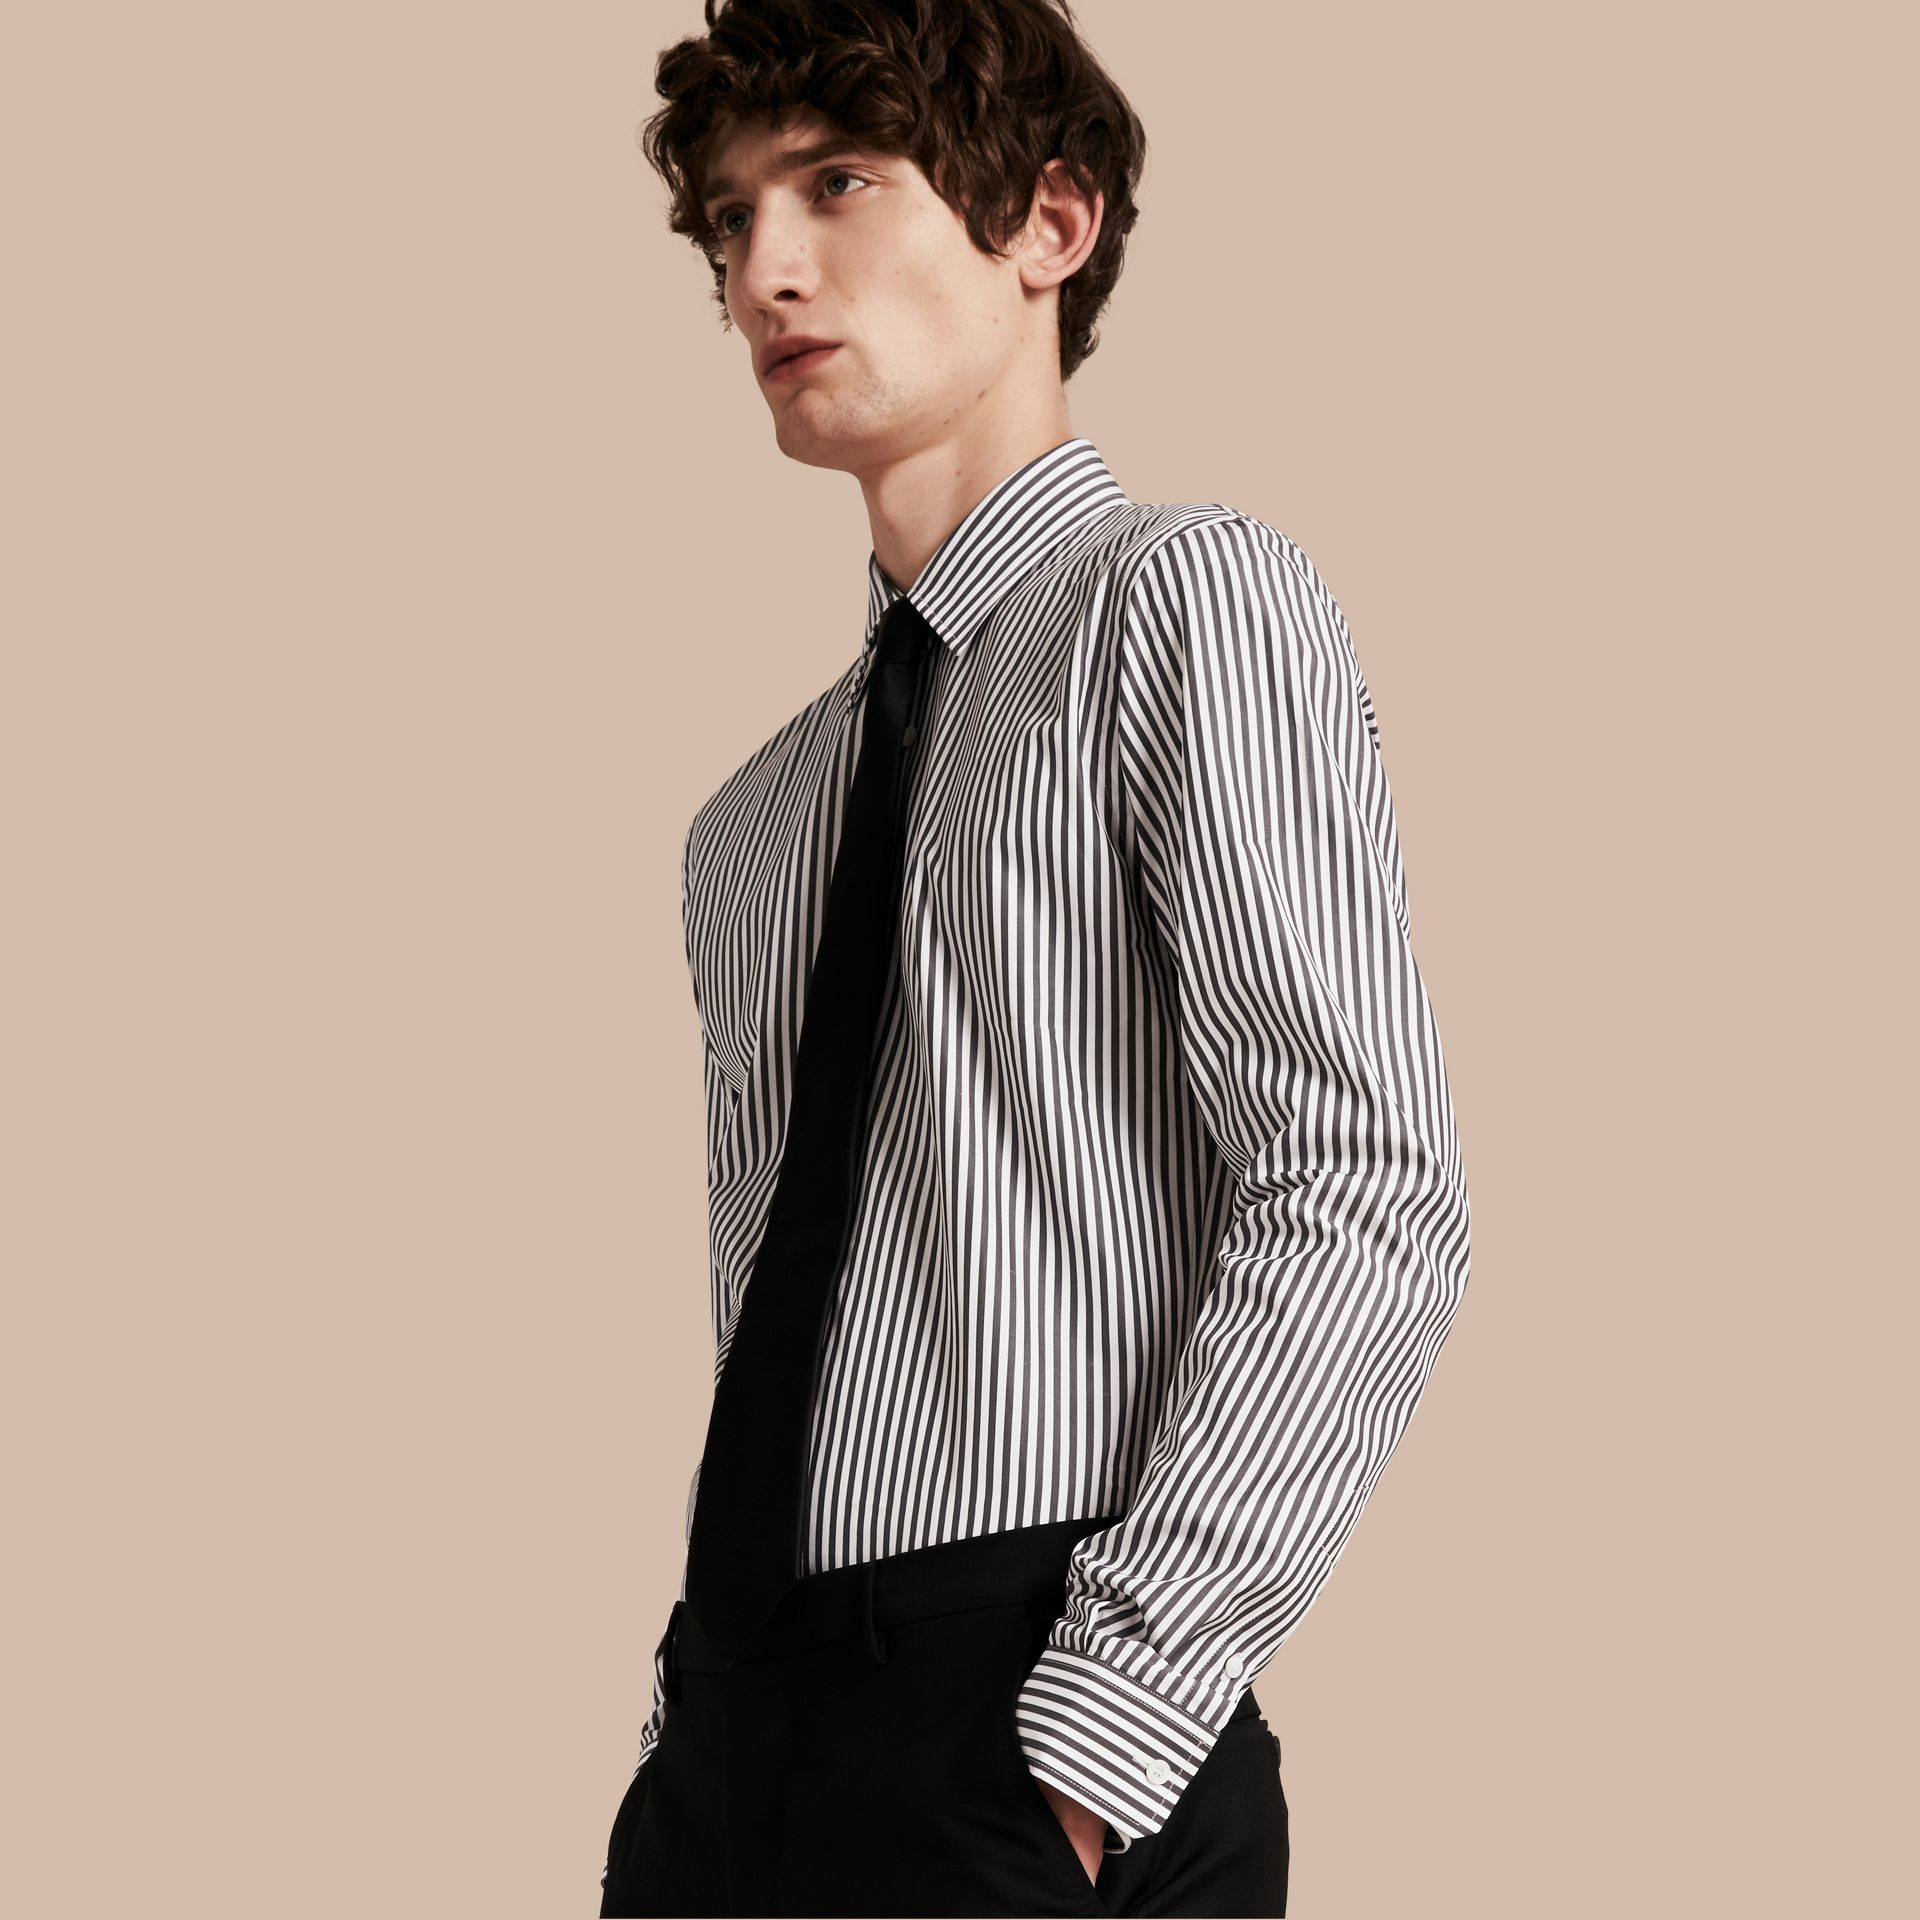 Charcoal Slim Fit Striped Cotton Poplin Shirt Charcoal - gallery image 1